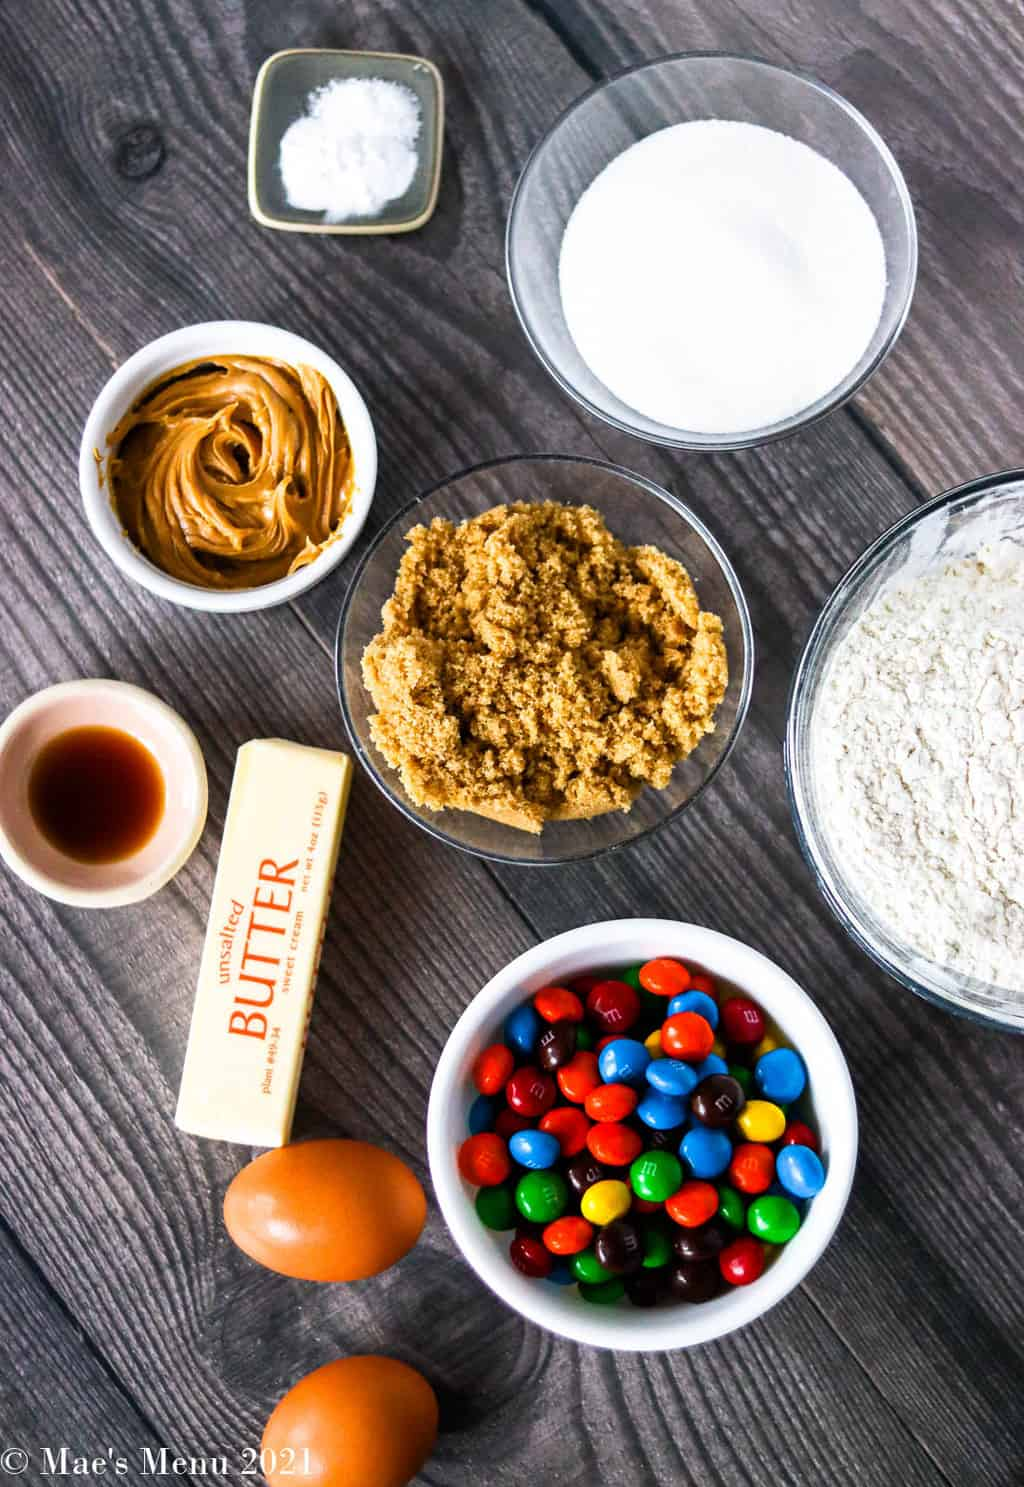 All the ingredients for peanut butter M&M cookies: peanut butter M&Ms, brown sugar, sugar, flour, eggs, butter, vanilla extract, peanut butter, baking soda, and salt